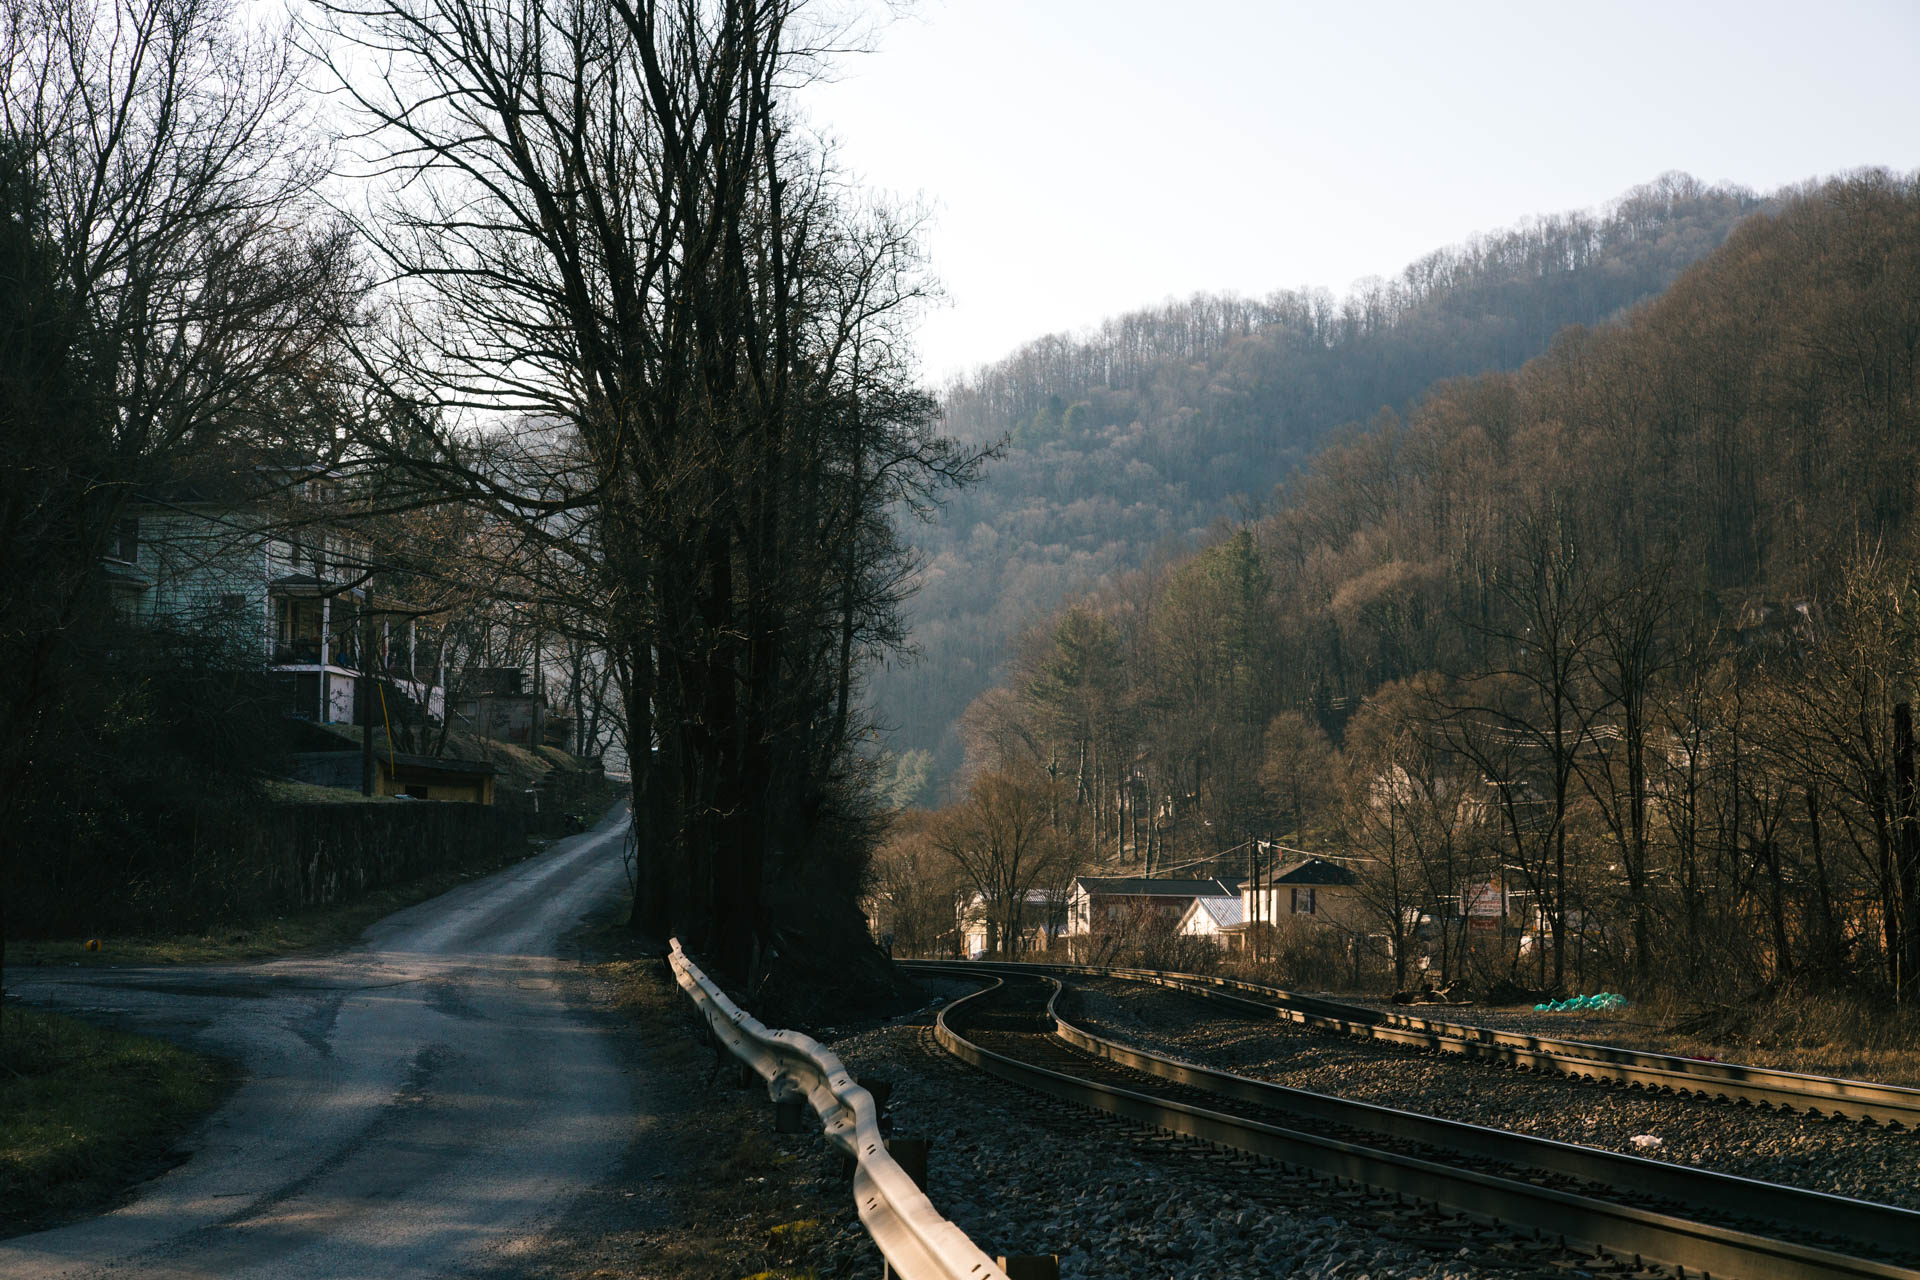 ns-pocahontas-route-coal-town-northfork-wv-2538